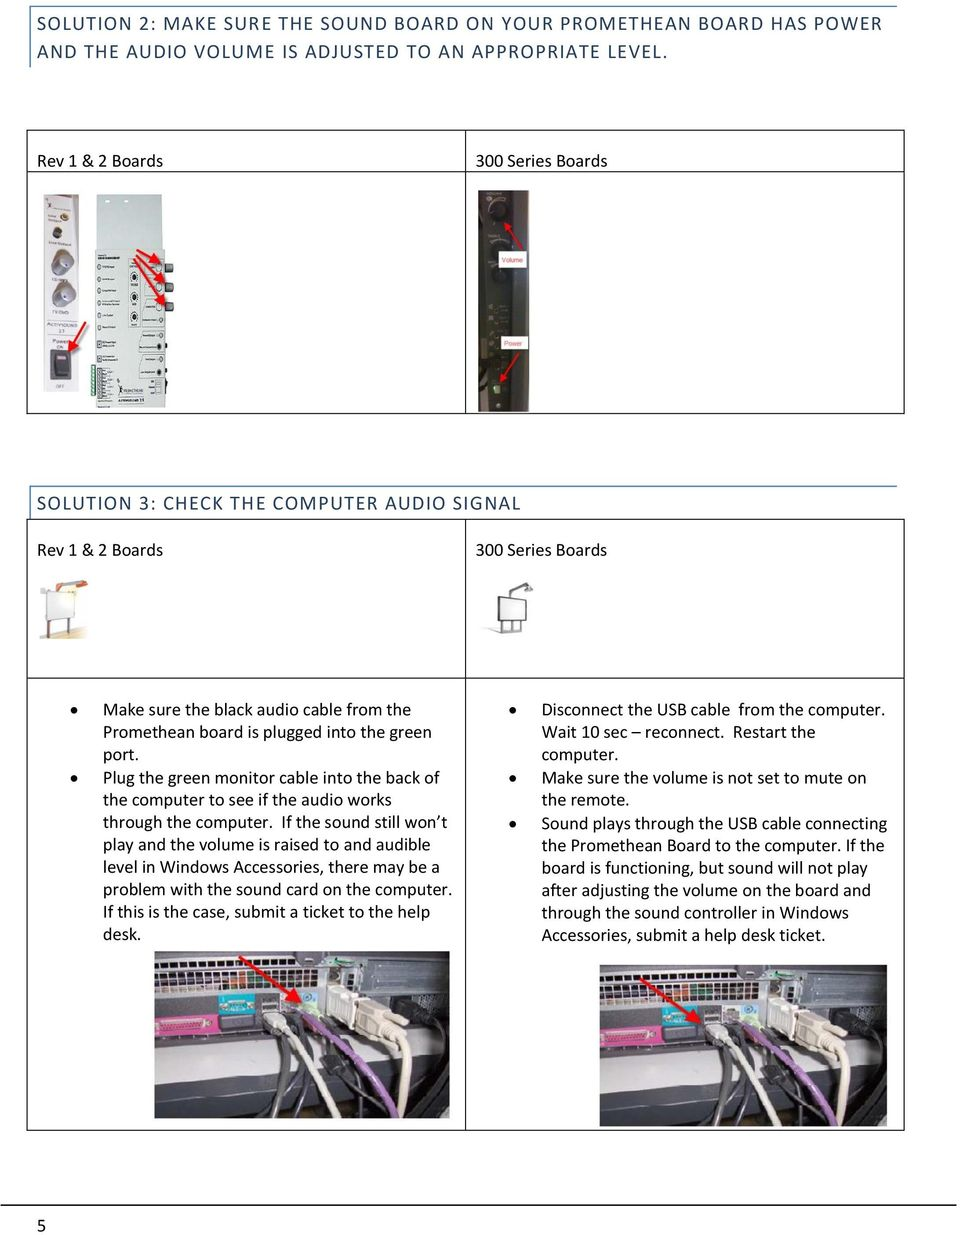 Promethean Trouble Shooting Tips V 20 A Quick Guide For The Most Wiring Board Port Plug Green Monitor Cable Into Back Of Computer To See If